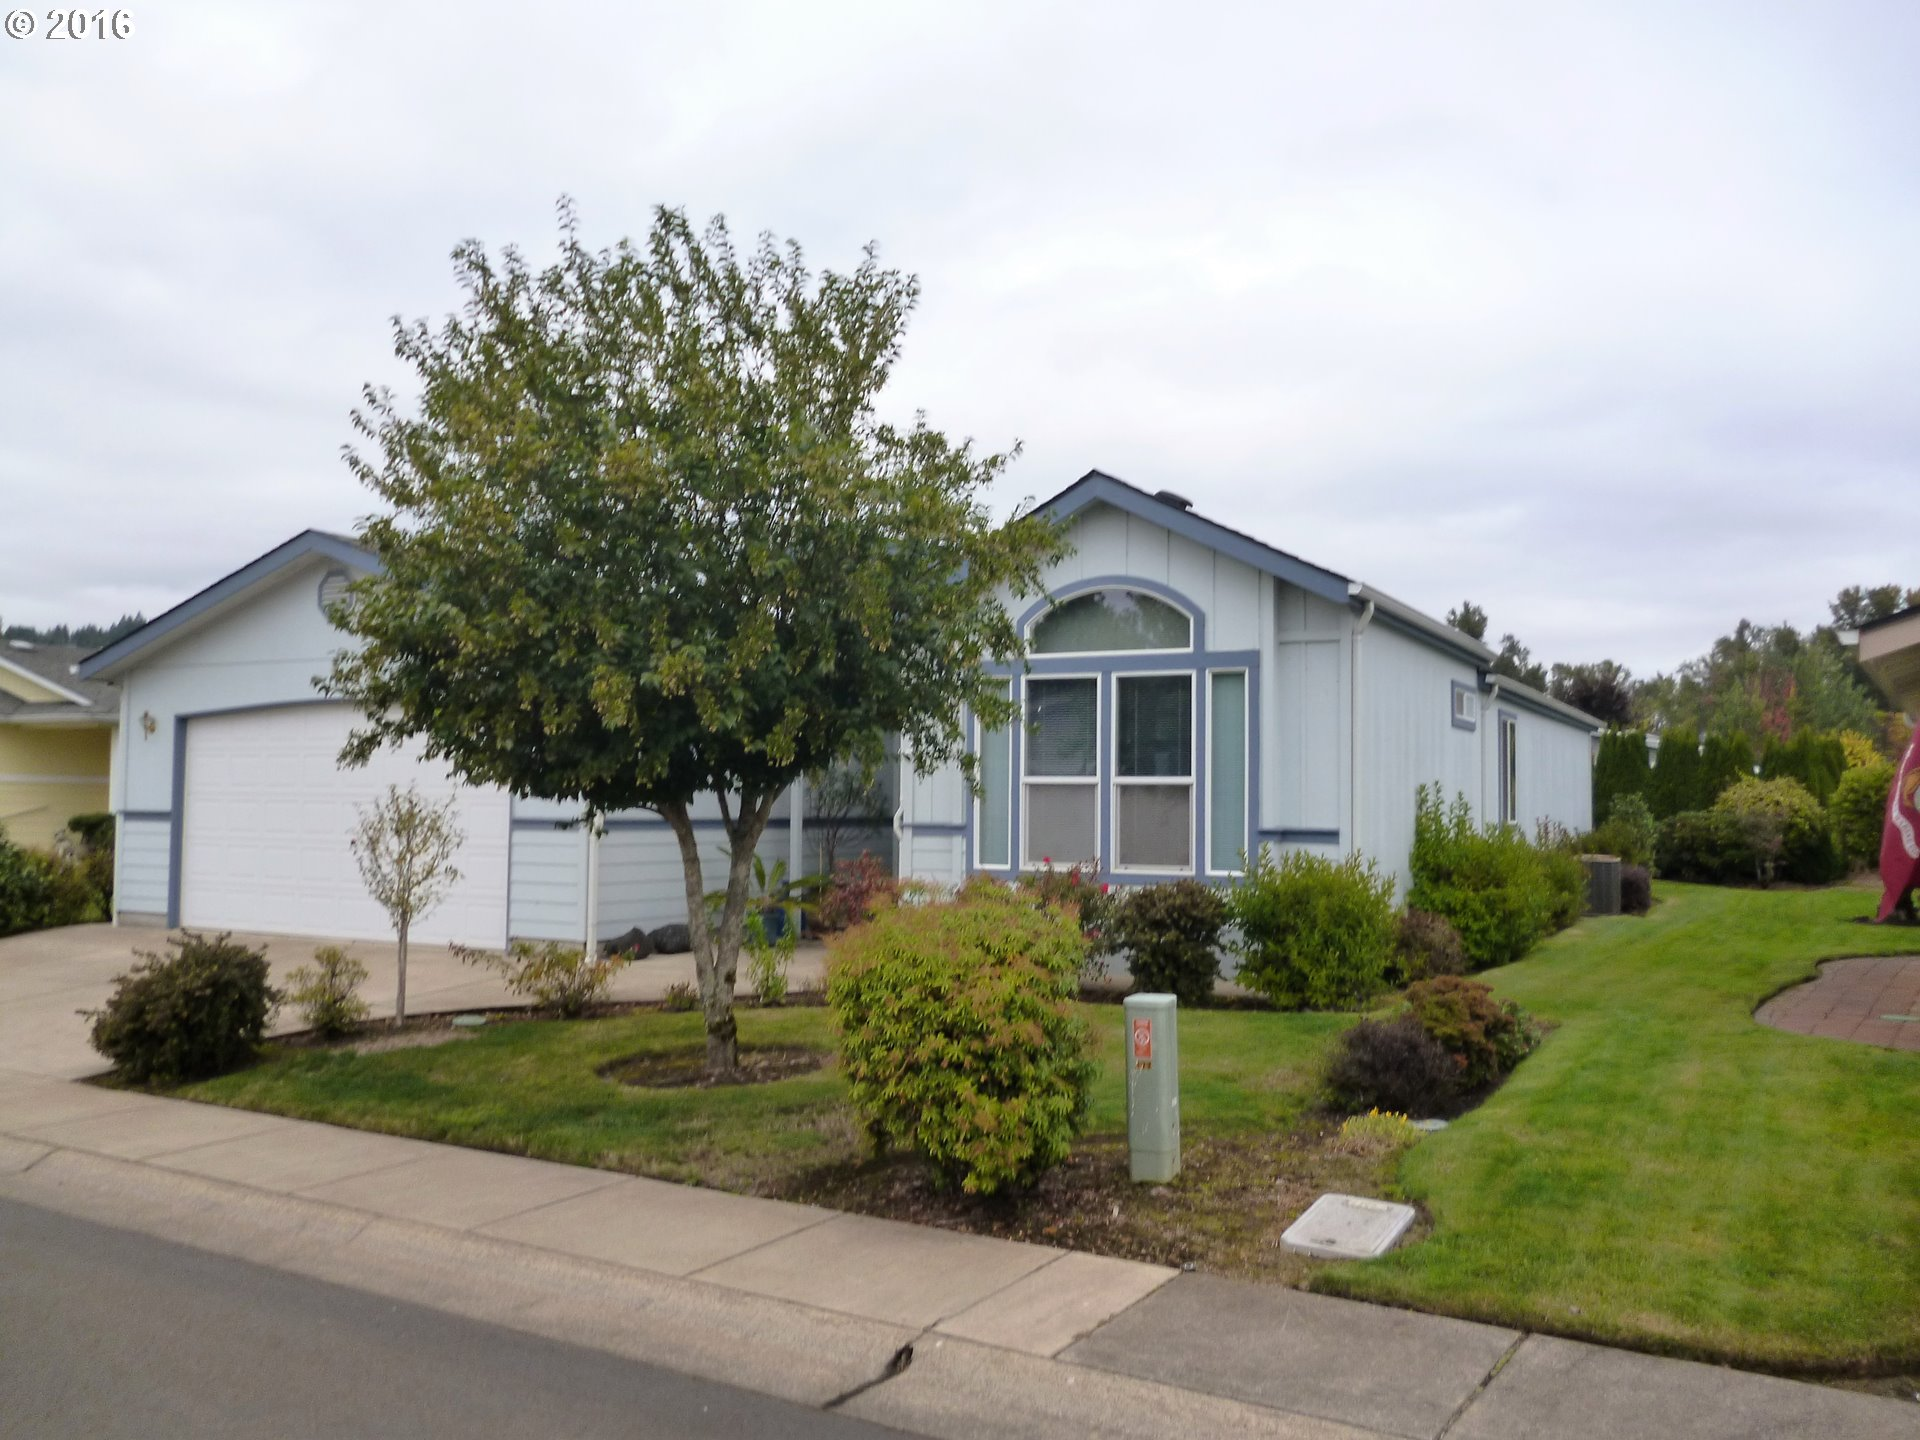 122 TYSON DR, Cottage Grove, OR 97424